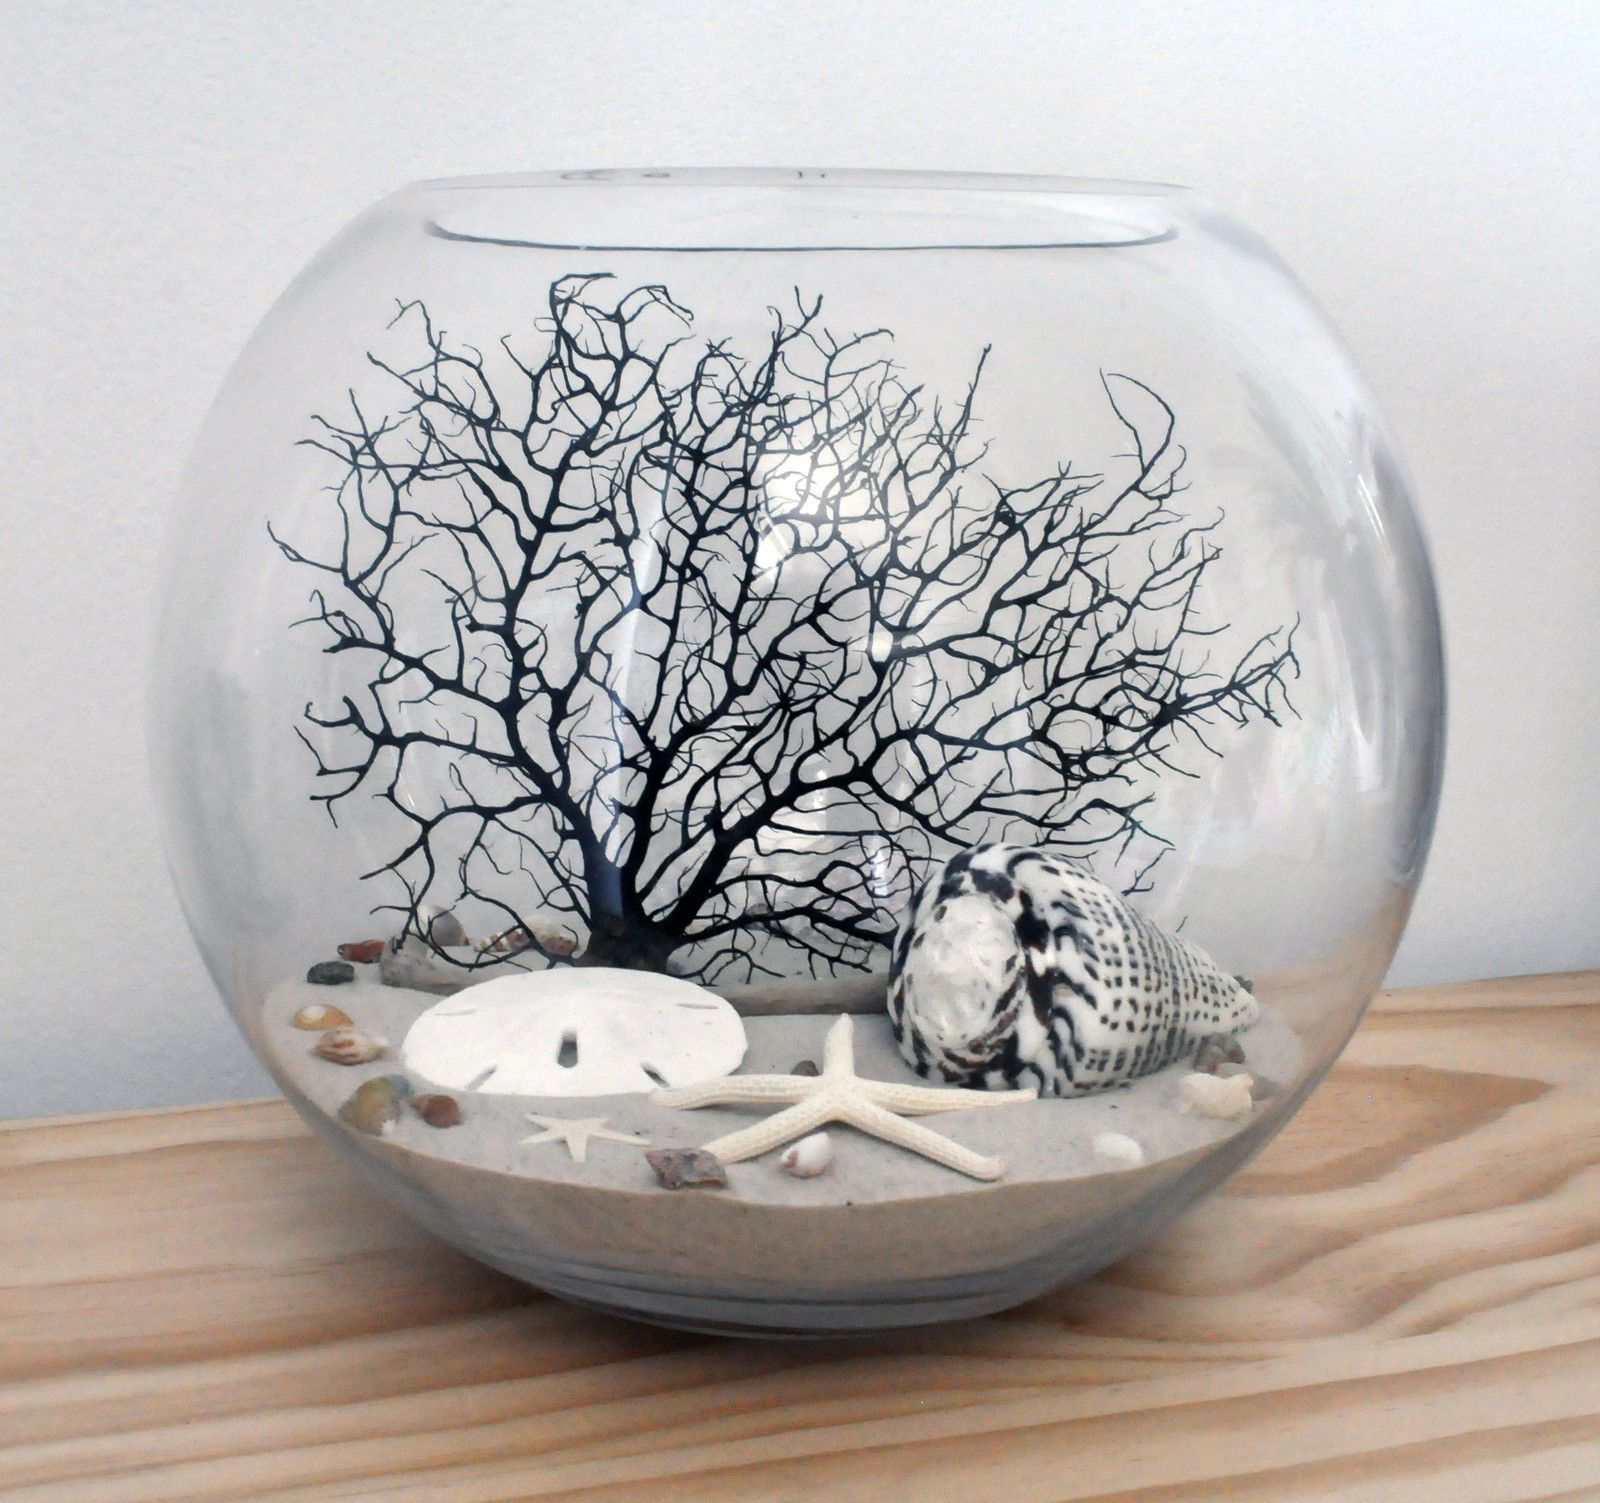 Gläser Dekorieren Mit Sand Coastal Glass Fishbowl Terrarium Sea Fan Starfish Shells Sand Dollar